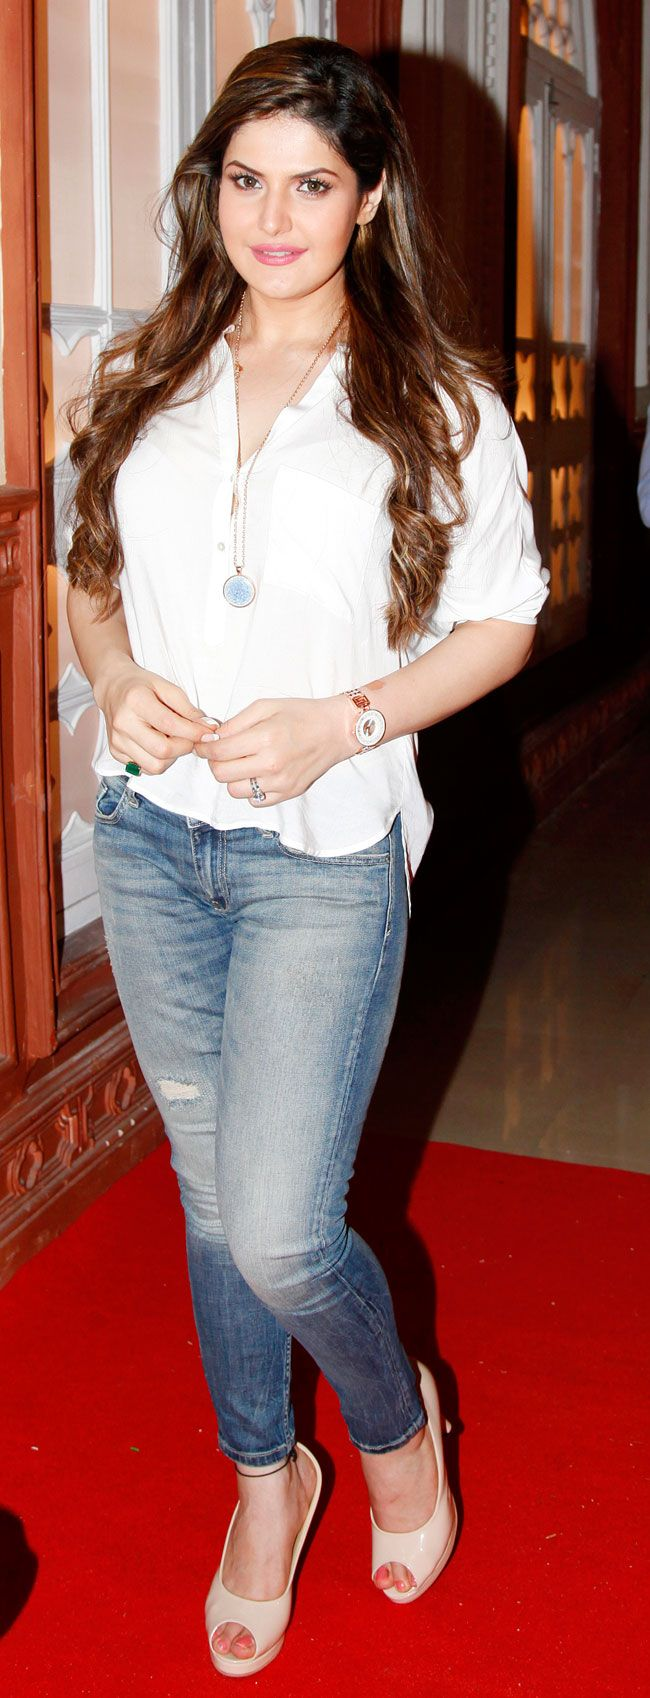 Zarine Khan on first day shoot of 'Hate Story 3'. #Bollywood #Fashion #Style #Beauty